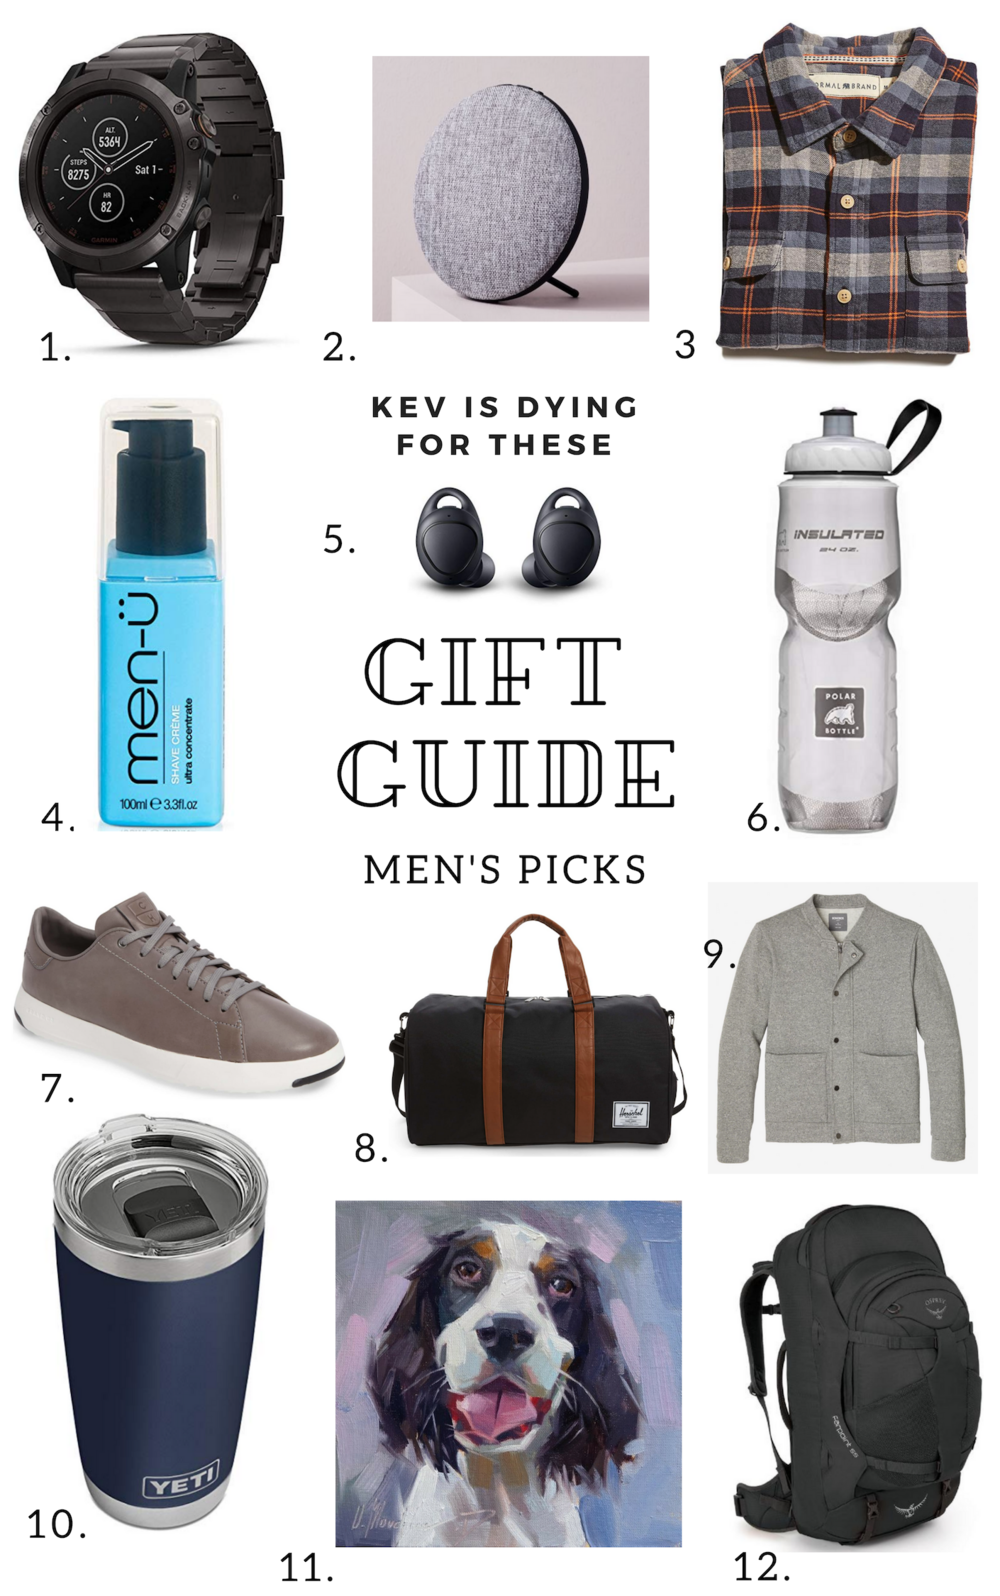 Men's Gift Guide - My Husband's Personal Picks